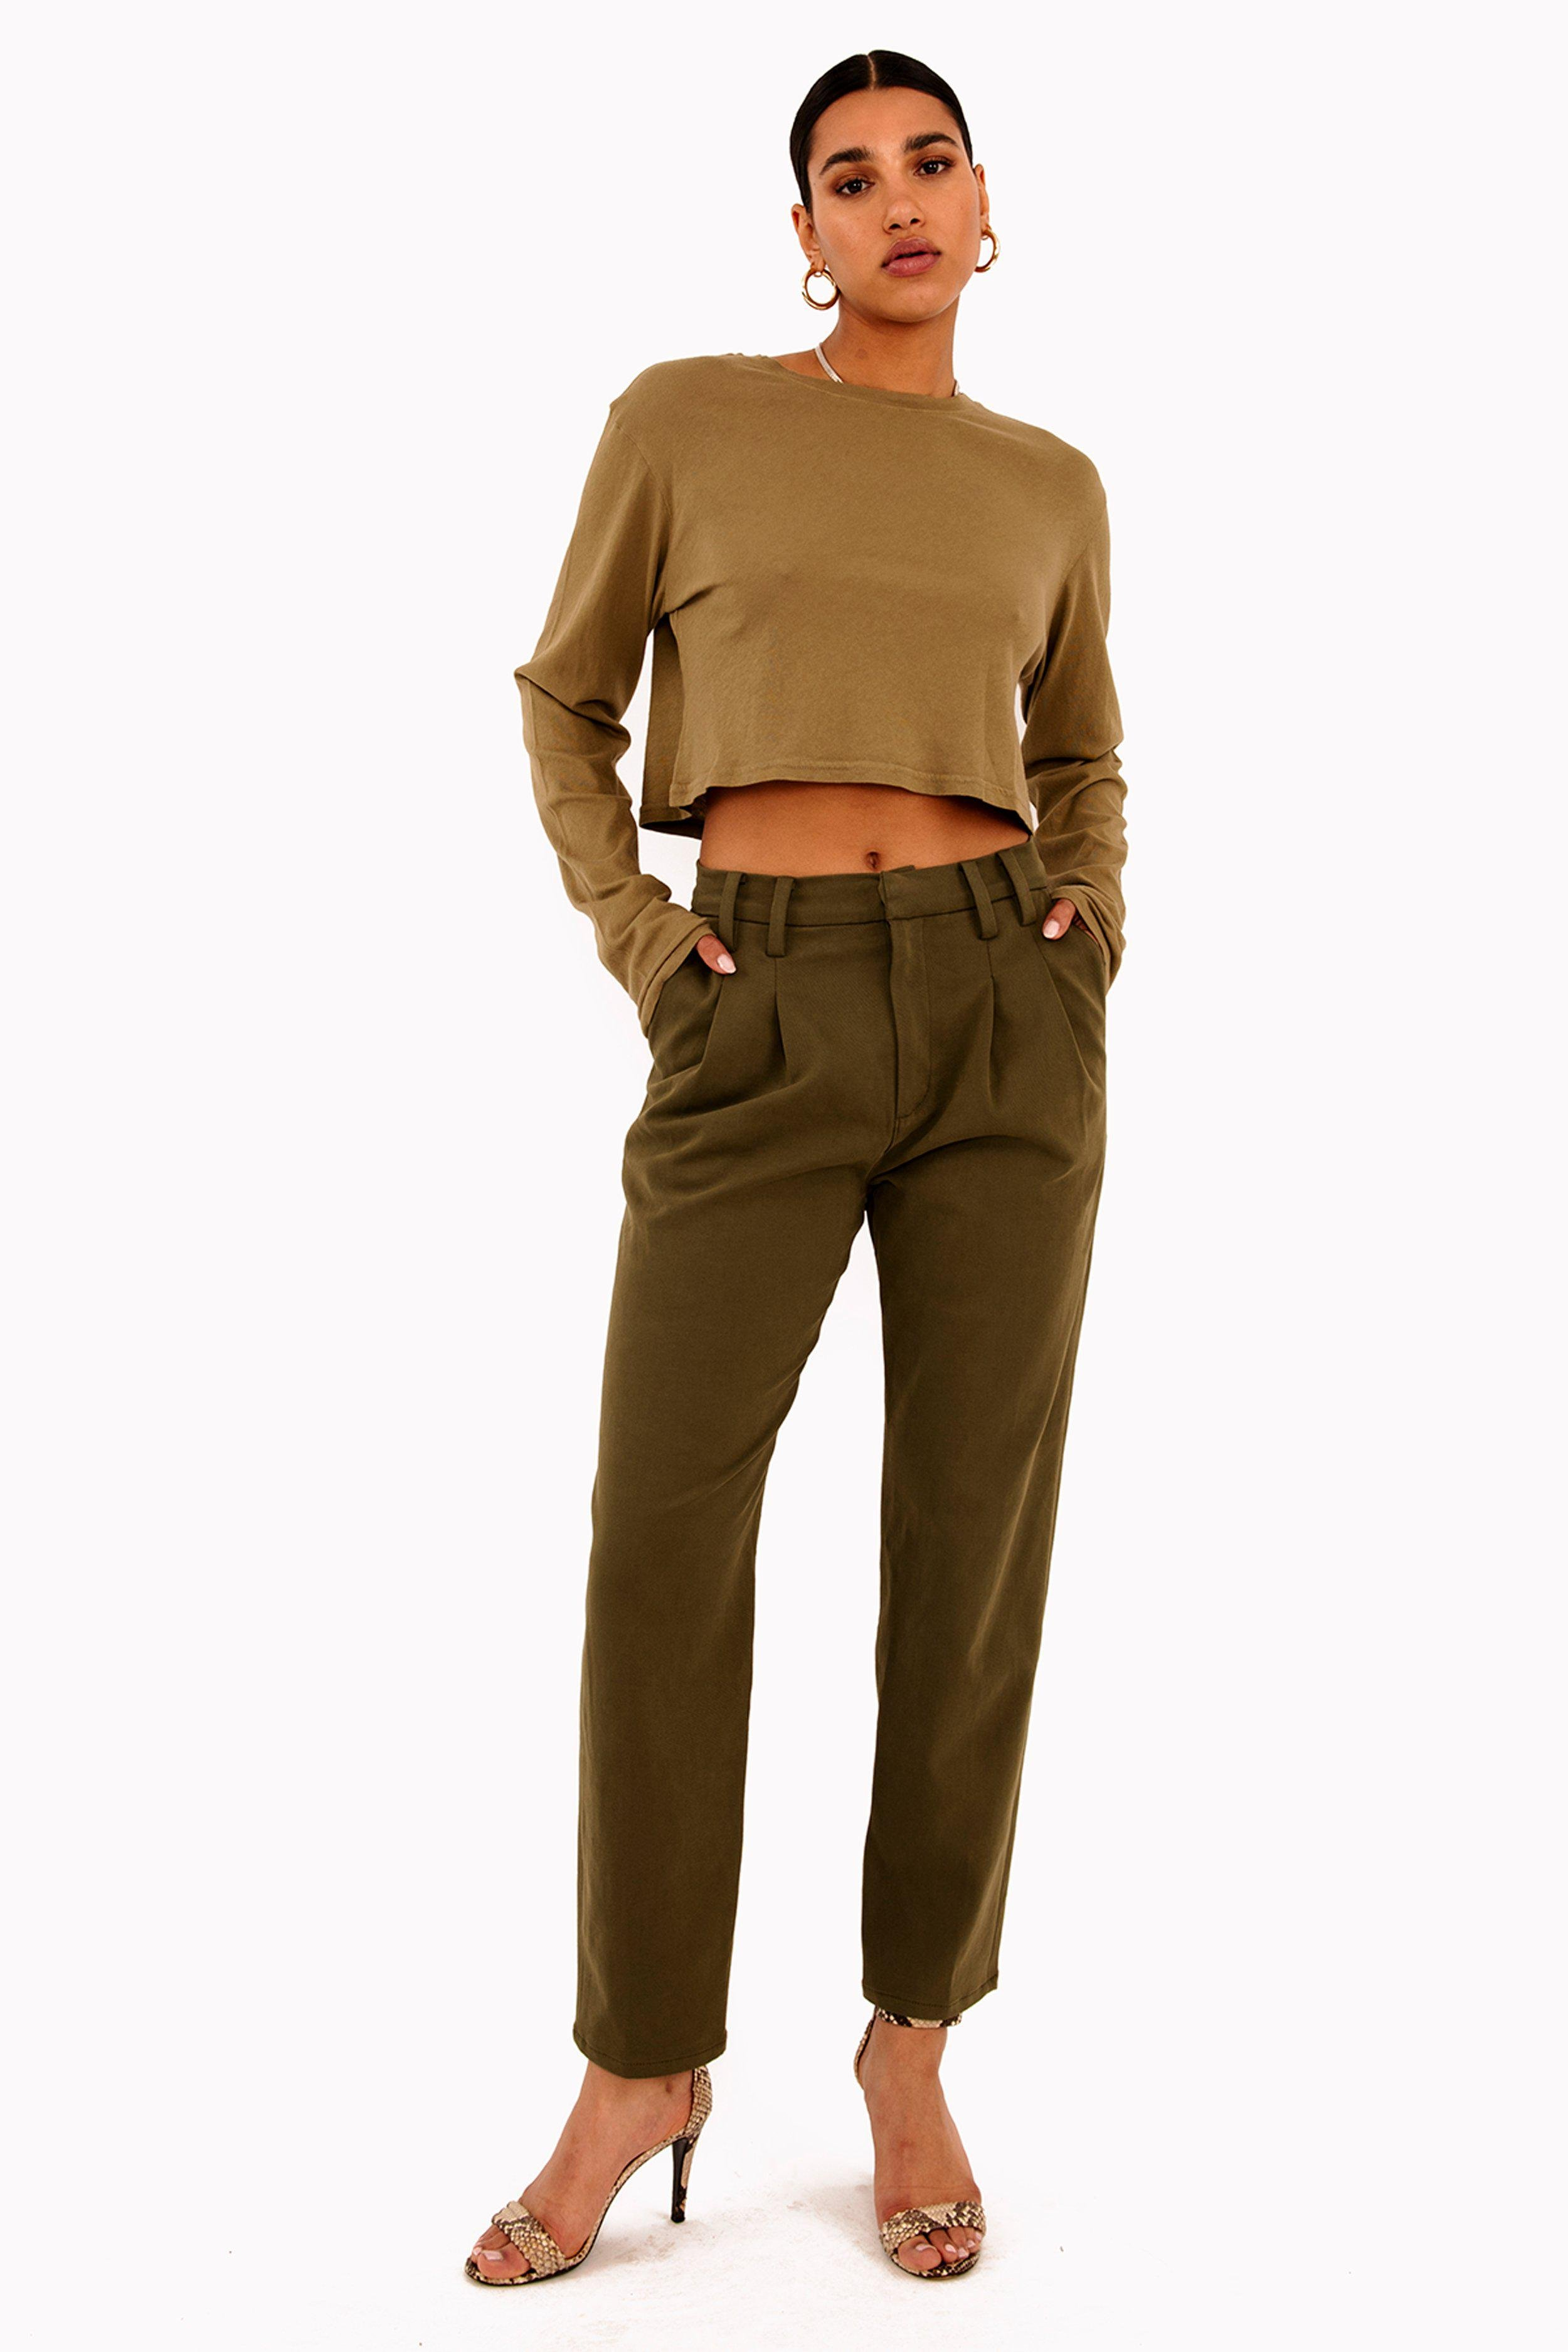 Army Green Twill Trouser Pant